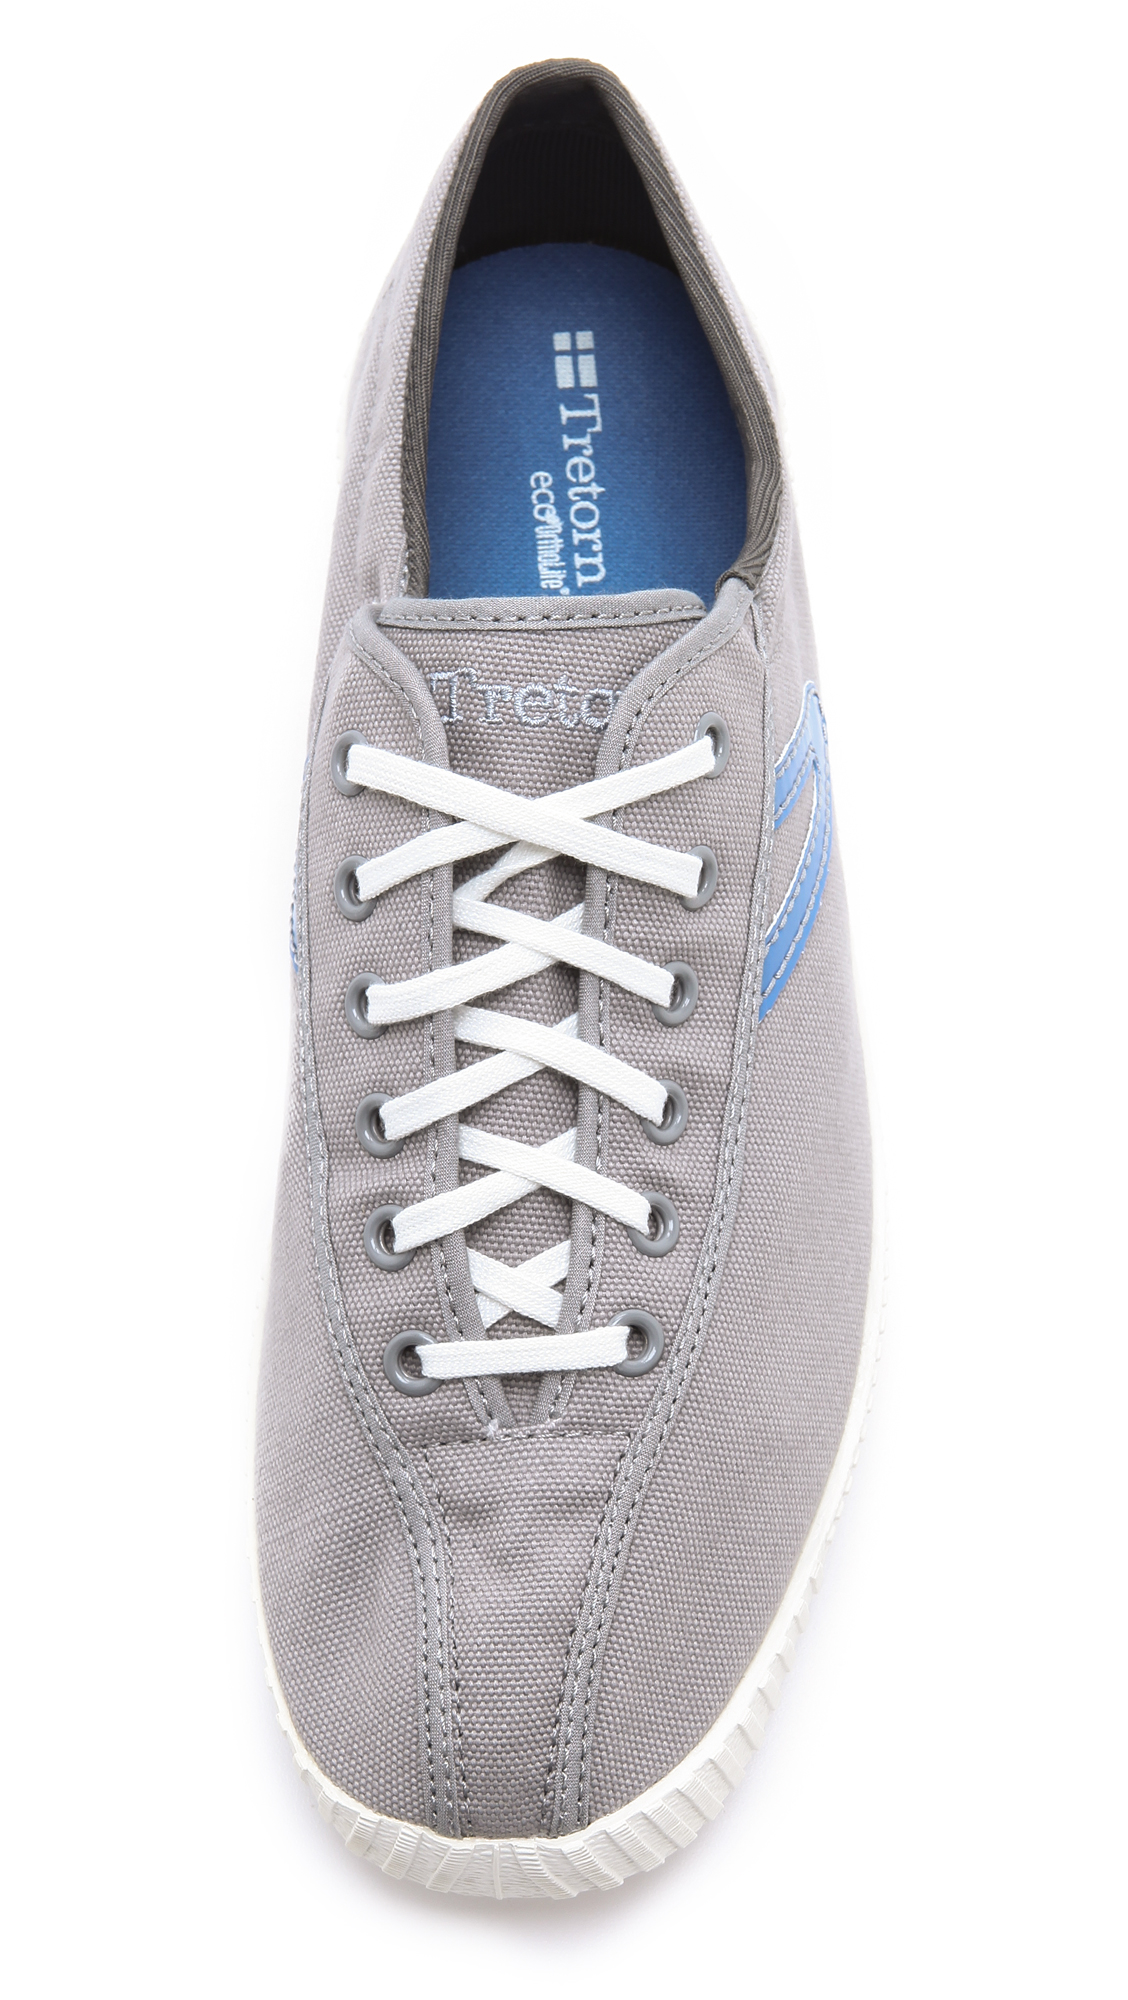 Tretorn Nylite Canvas Sneakers In Gray For Men Lyst